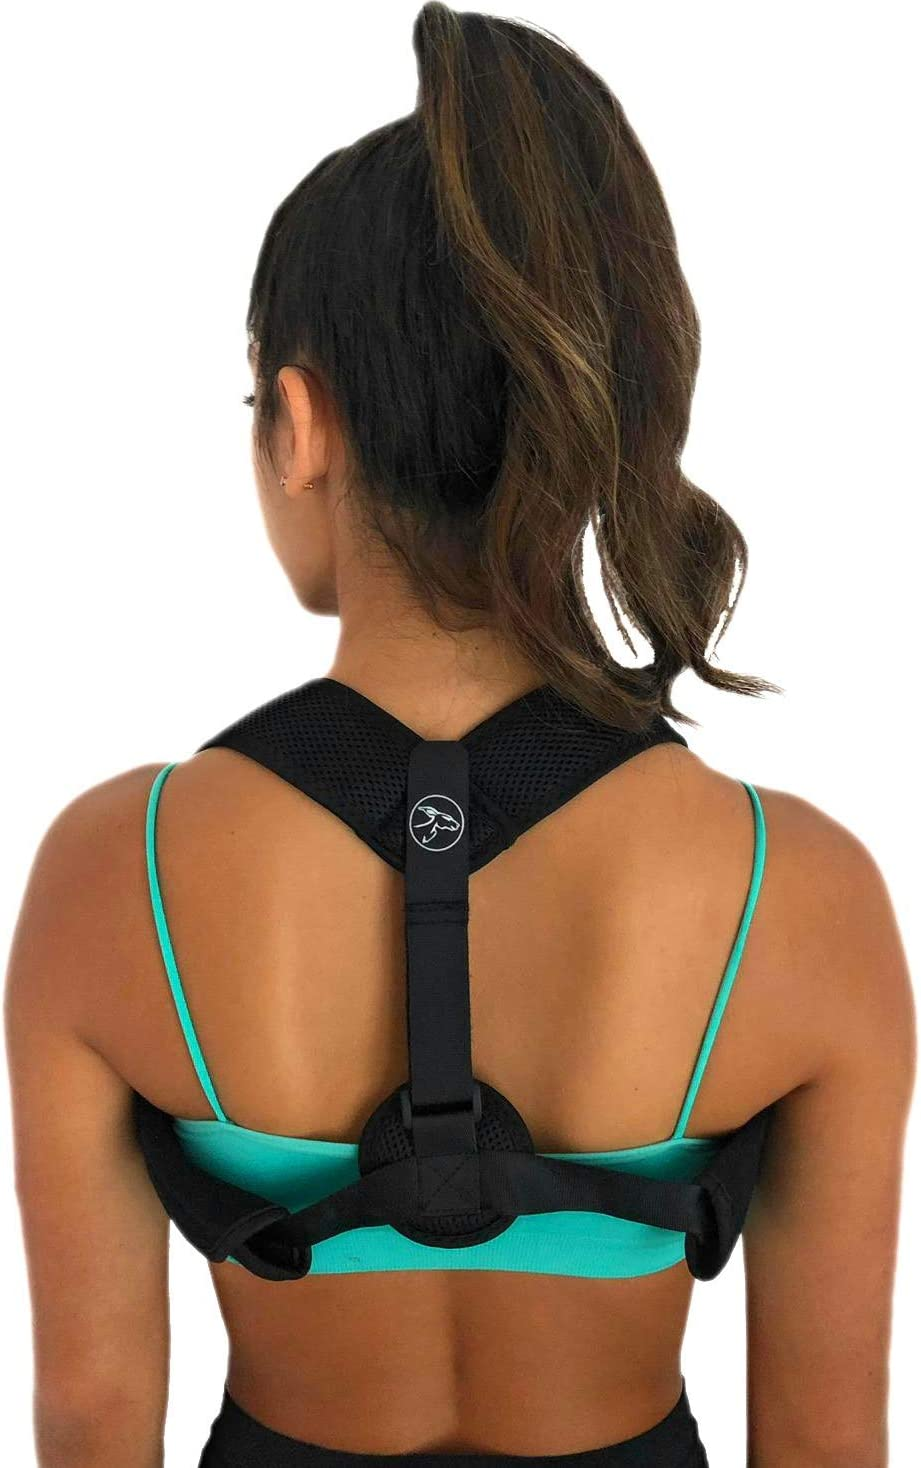 Posture Corrector for Women & Men - Neck & Back Pain Reliever with Future Benefits for Permanent Posture Correction - Adjustable Back Brace Straightener, Easily Hides Under Clothing